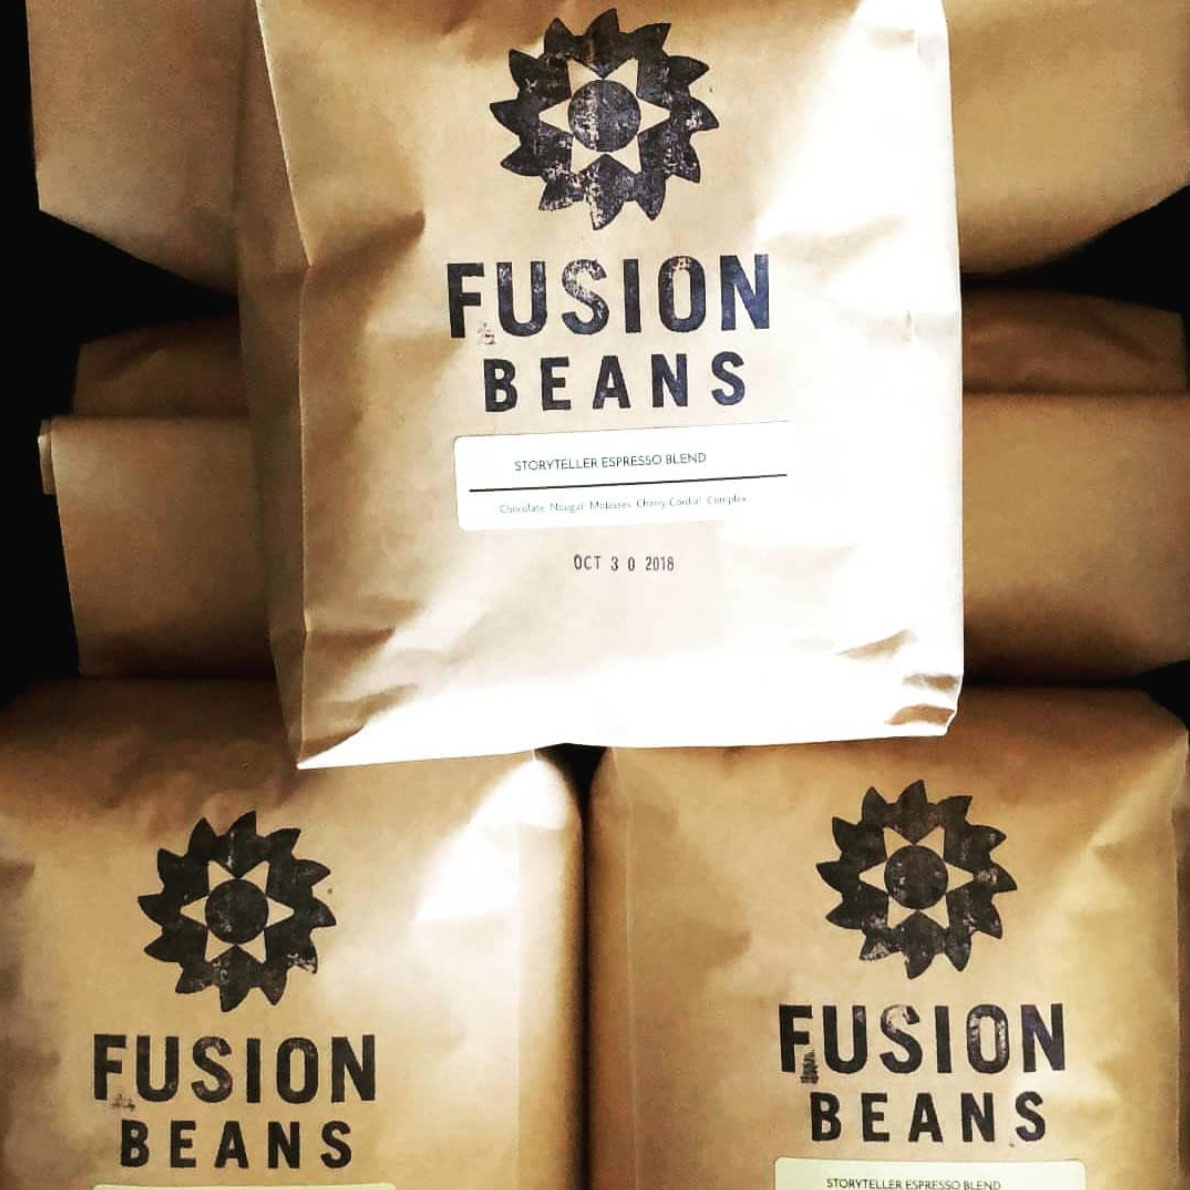 Retail packaging for Fusion Beans